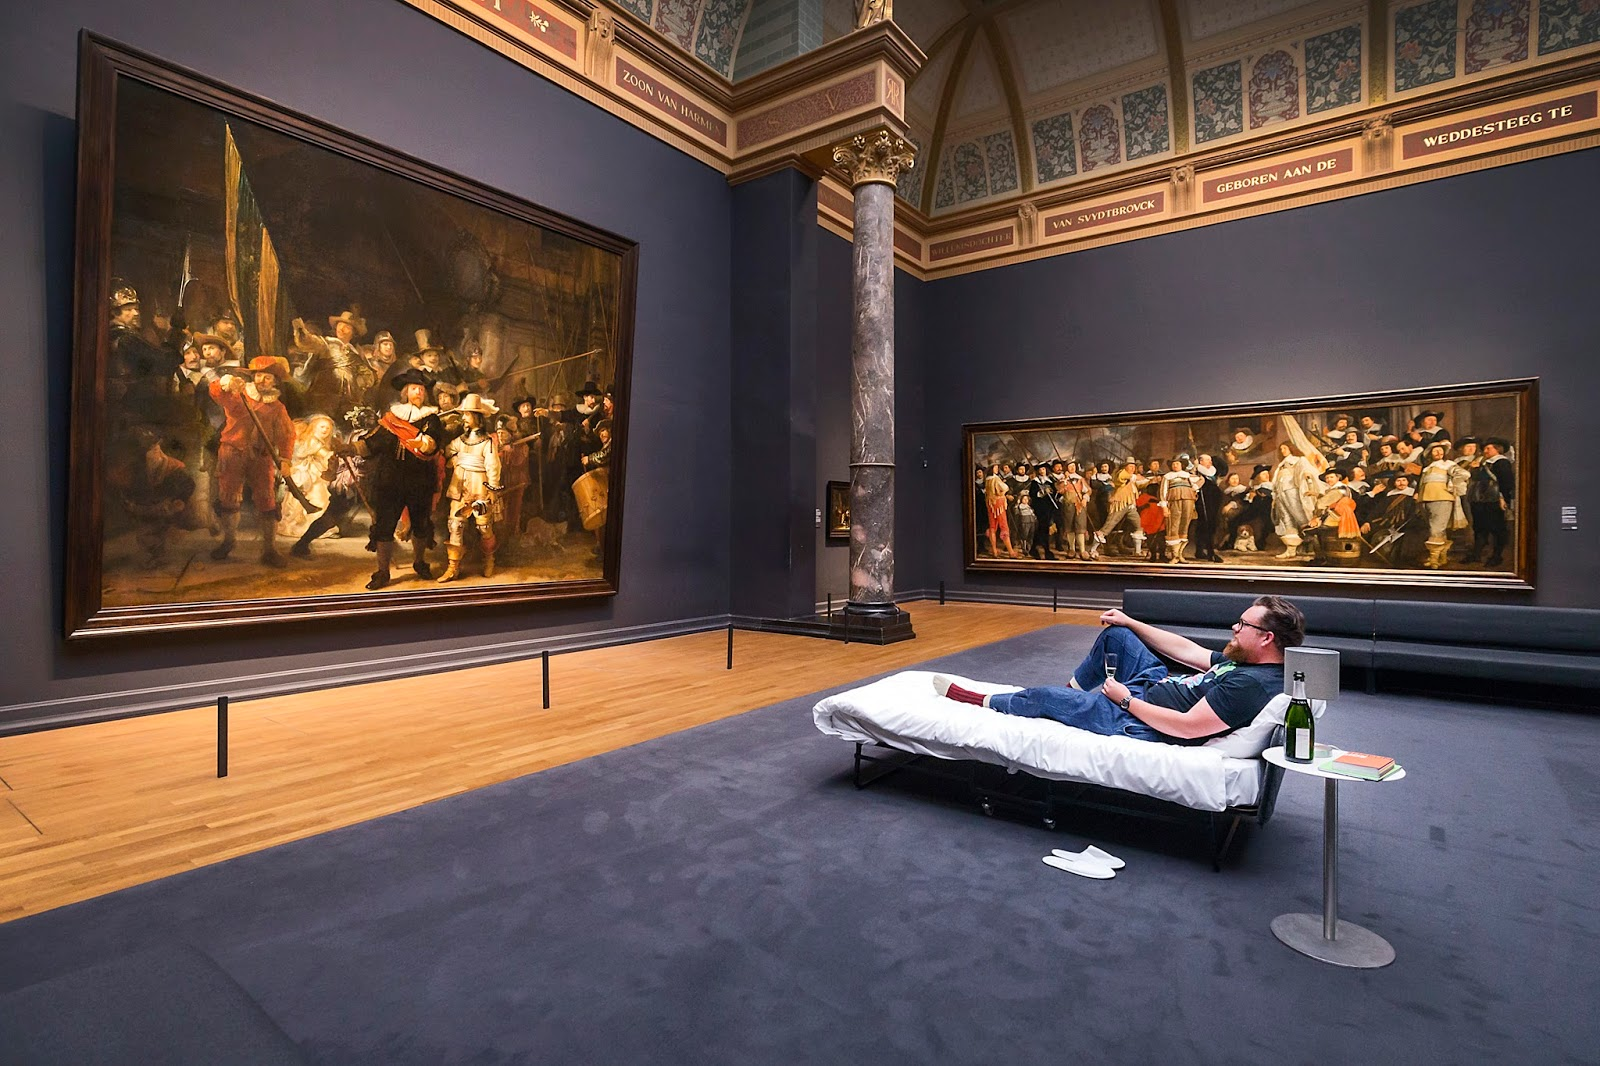 Rijksmuseum's Amsterdam 10 millionth visitor slept  'together with